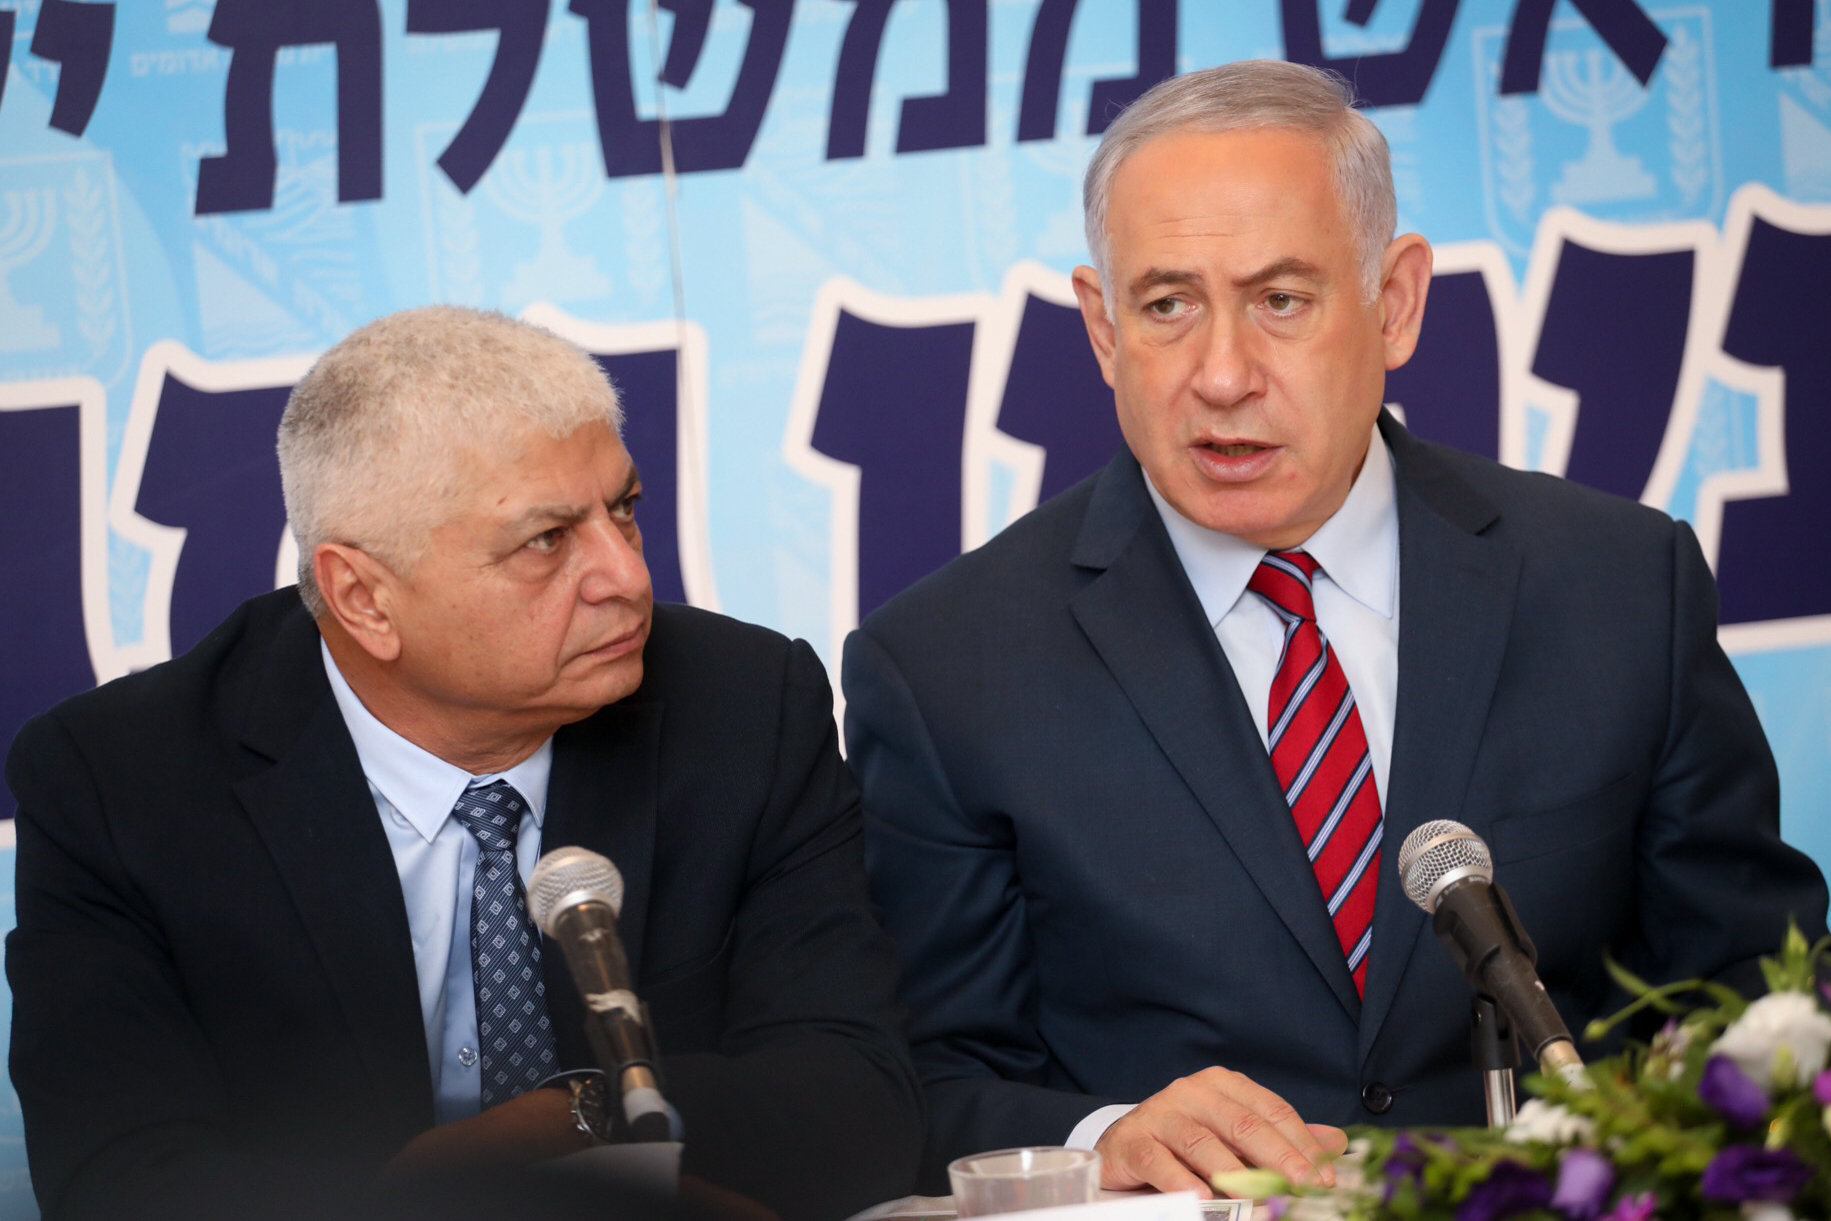 Netanyahu backs Greater Jerusalem bill to annex surrounding towns